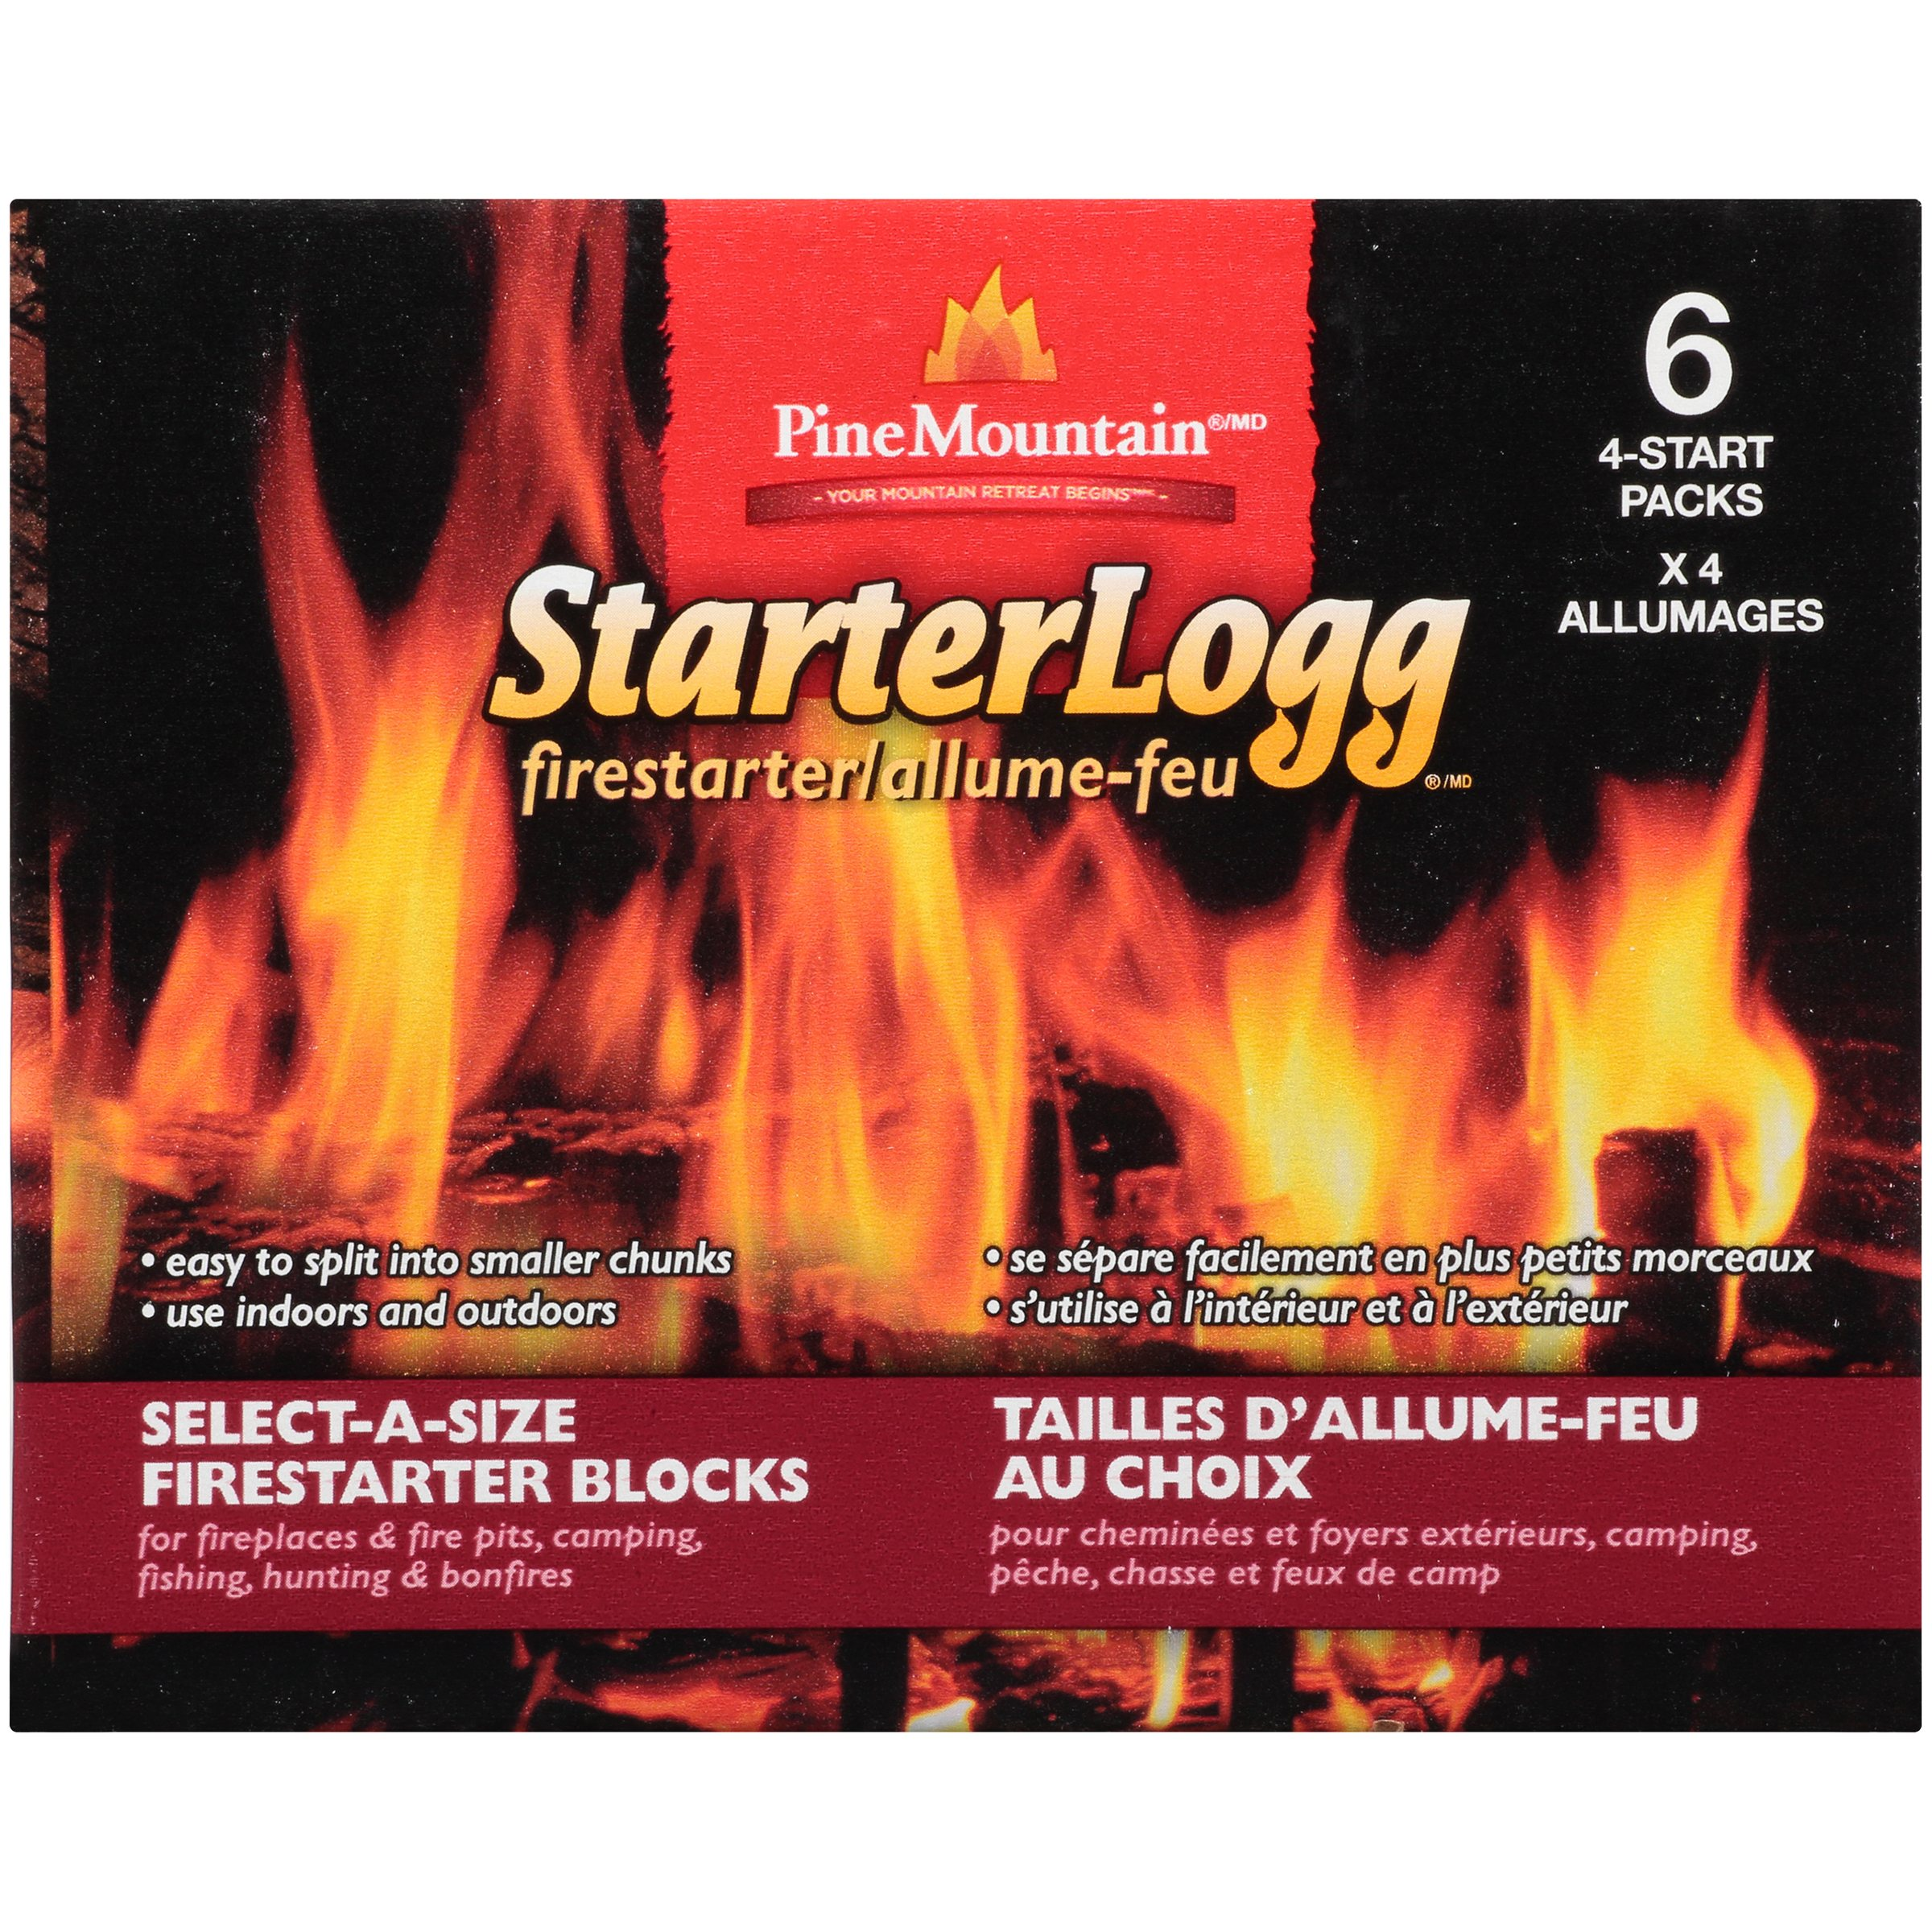 Gas Log Starters For Fireplace Pine Mountain Starterlogg 24pk